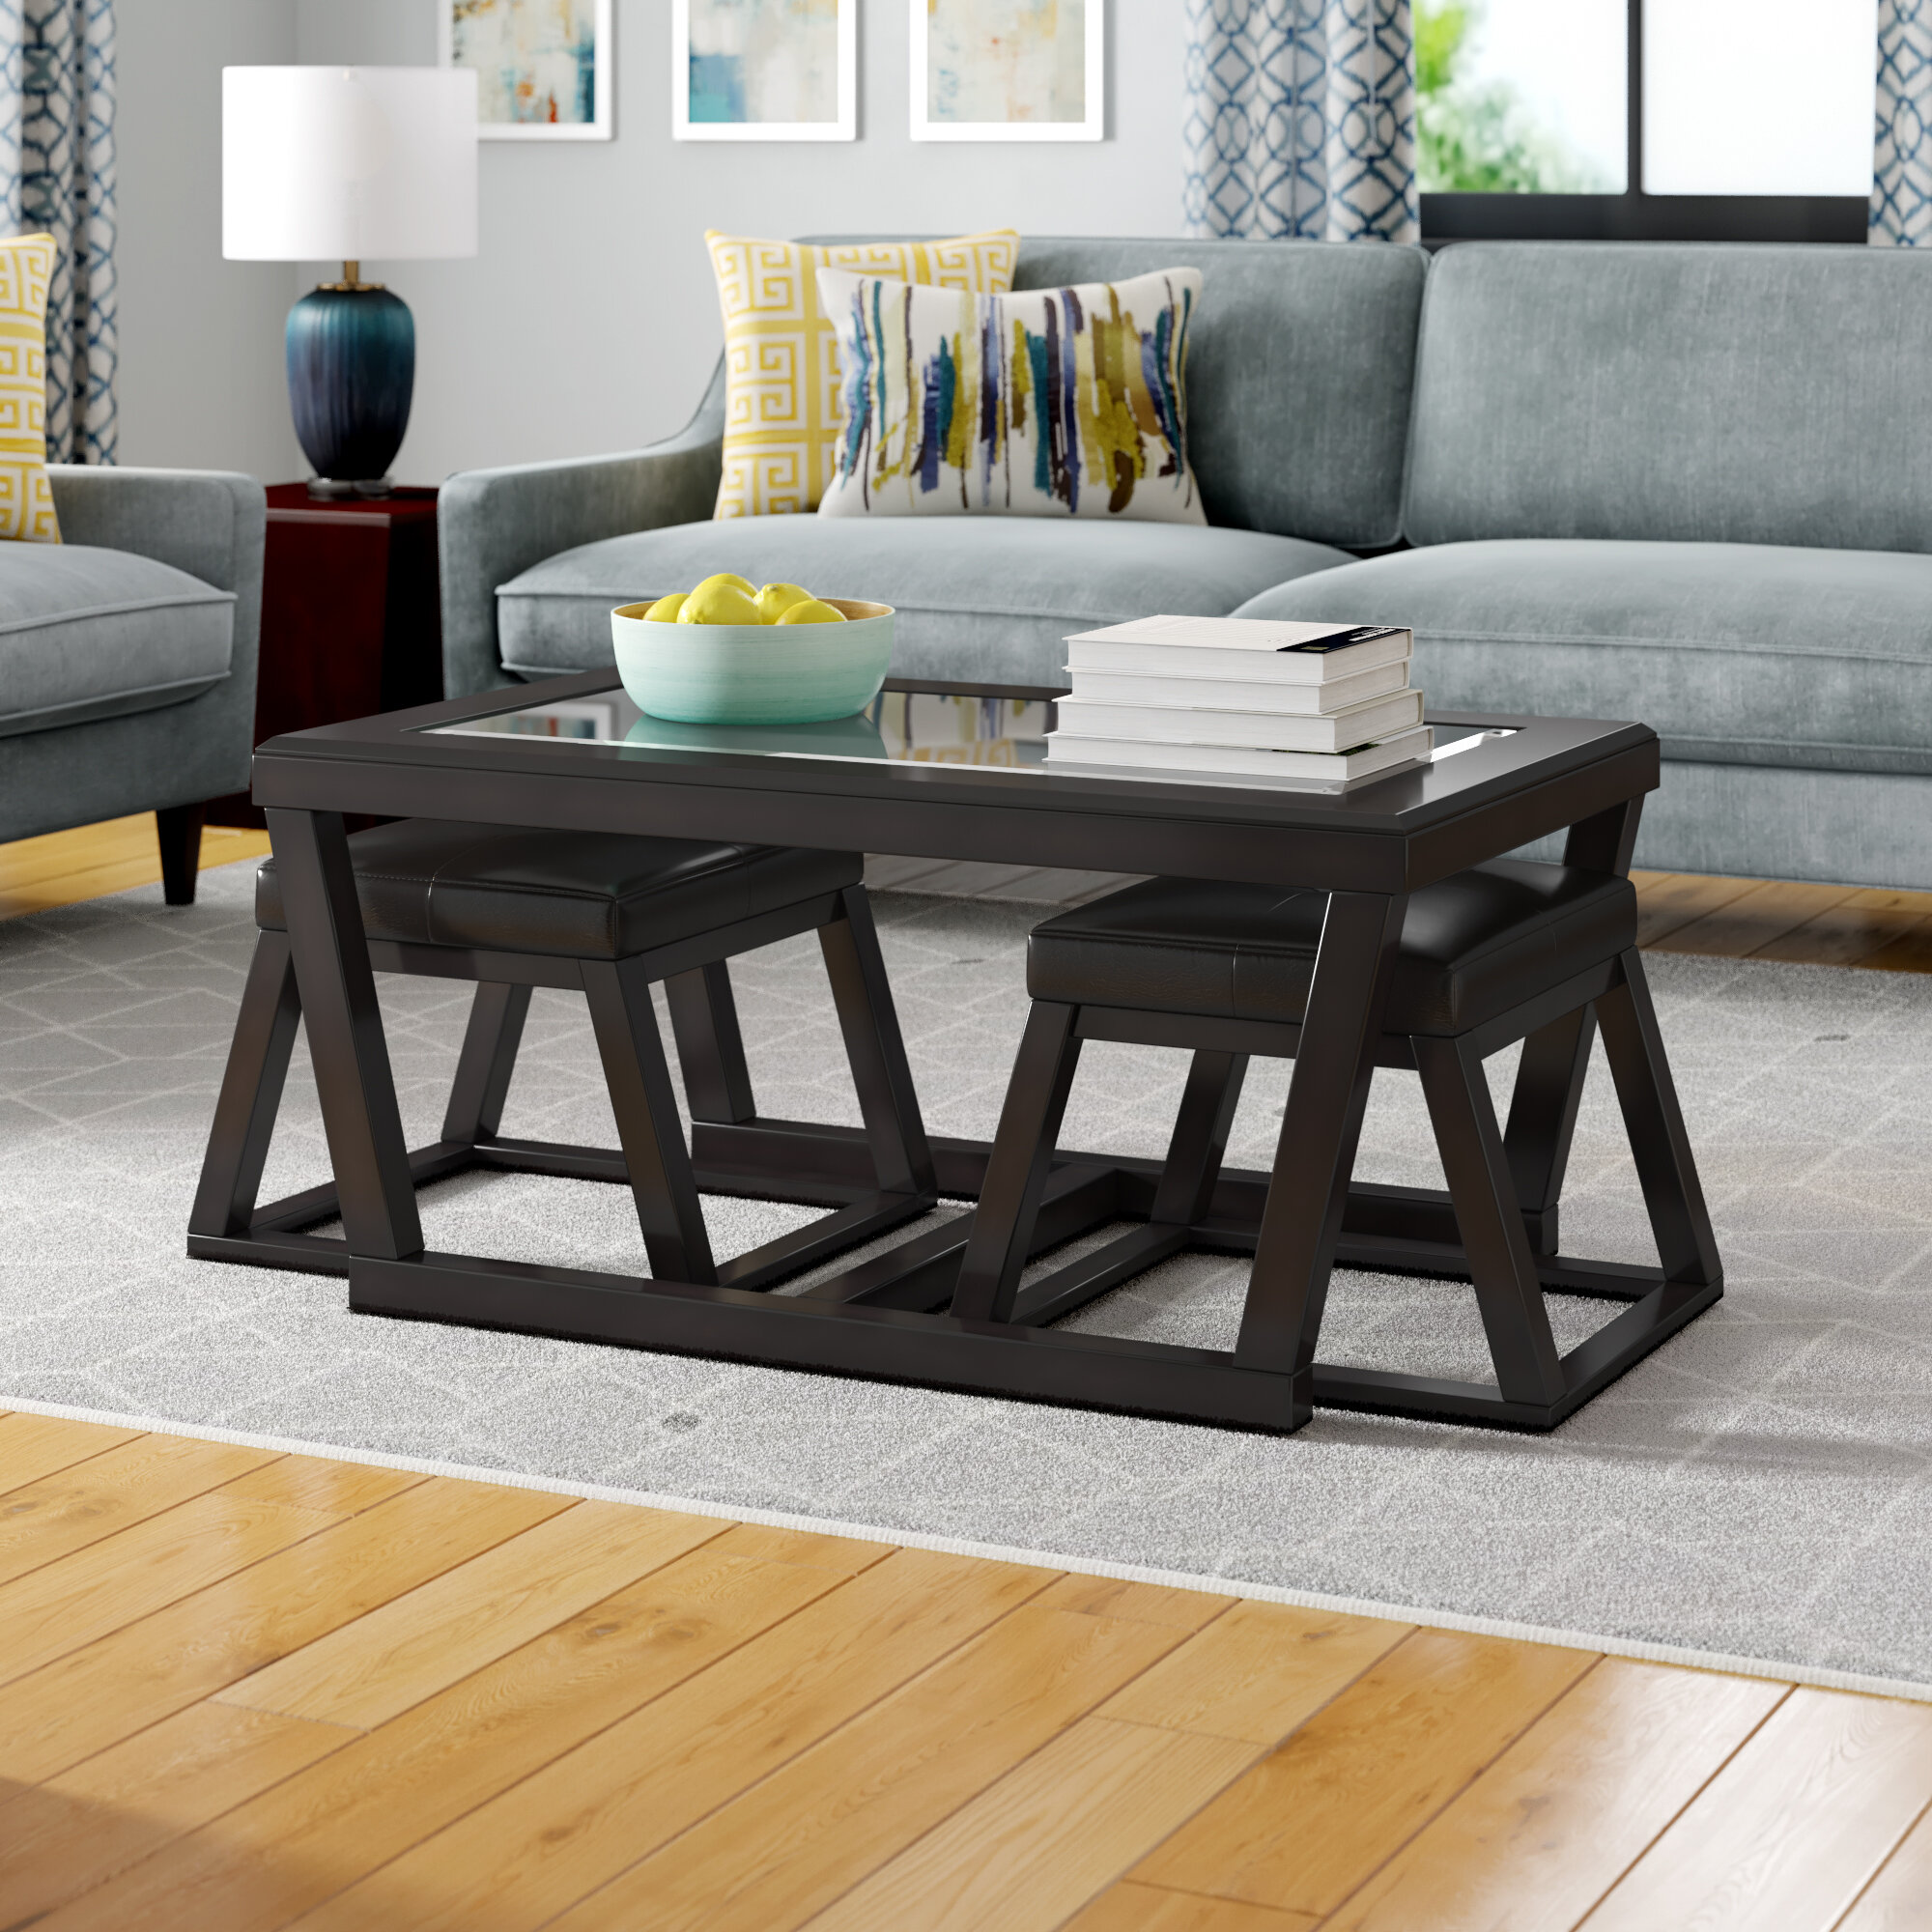 Coffee Table With Stools.Parodi Coffee Table With 2 Nested Stool